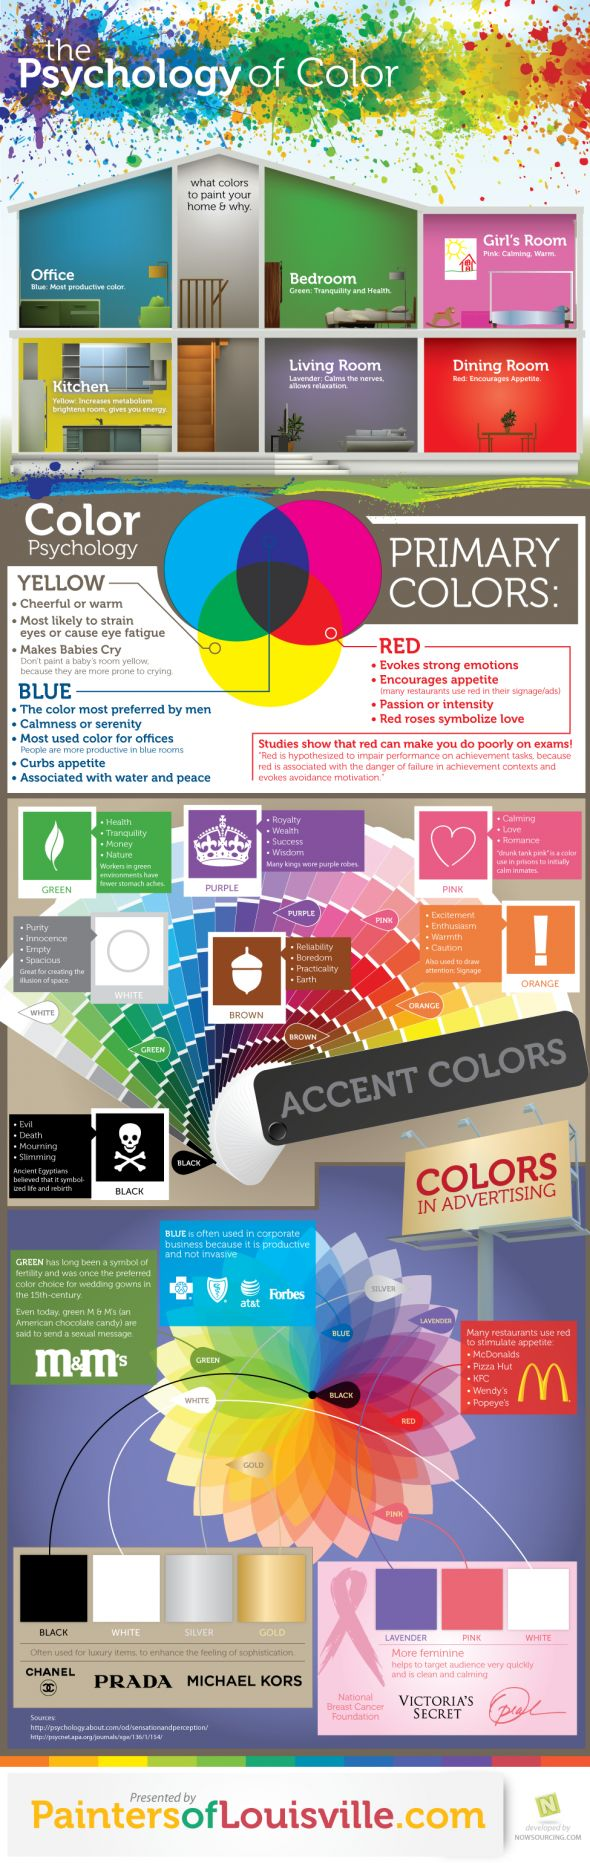 3 Ways Color Manipulates You